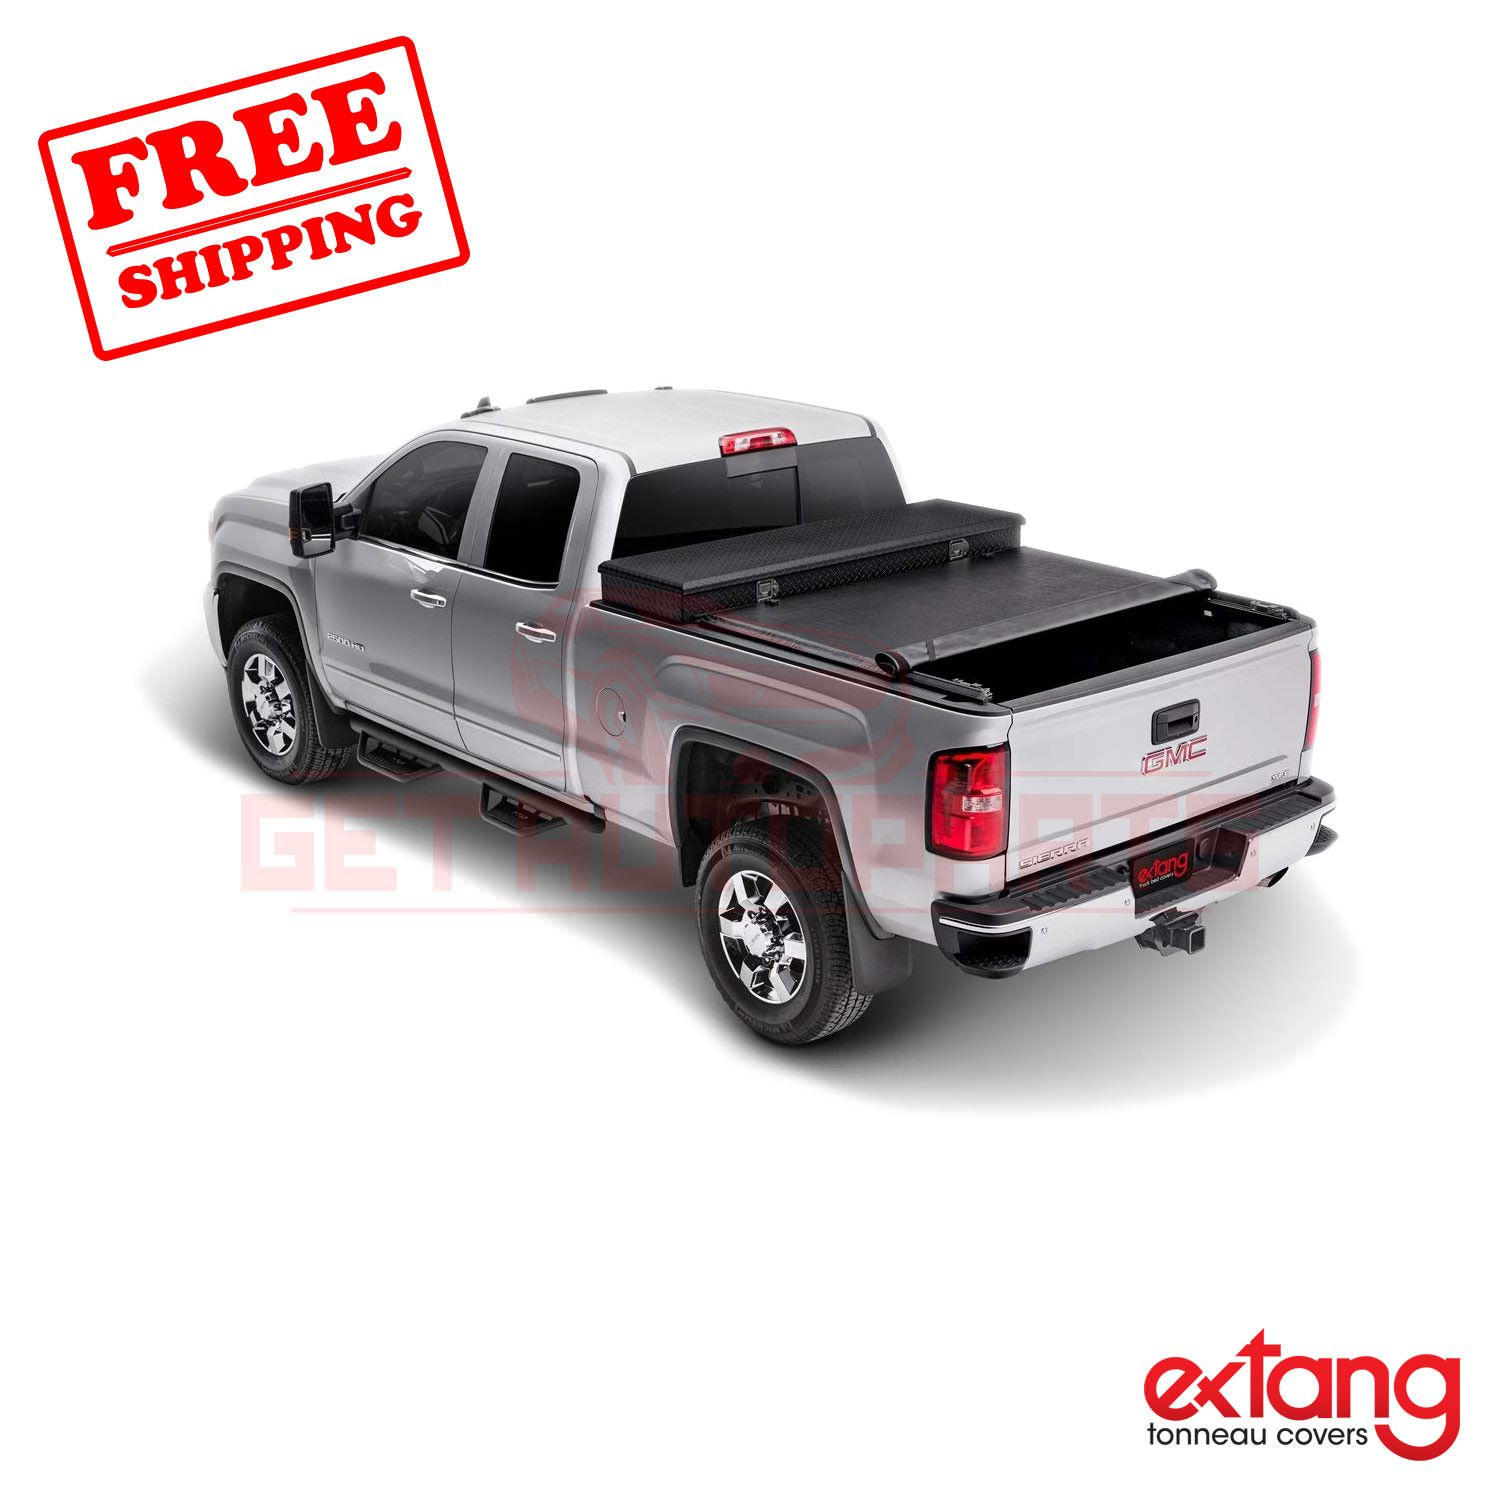 Extang Tonneau Cover Fit Gmc Sierra 1500 99 06 In 2020 Gmc Sierra 1500 Tonneau Cover Gmc Sierra